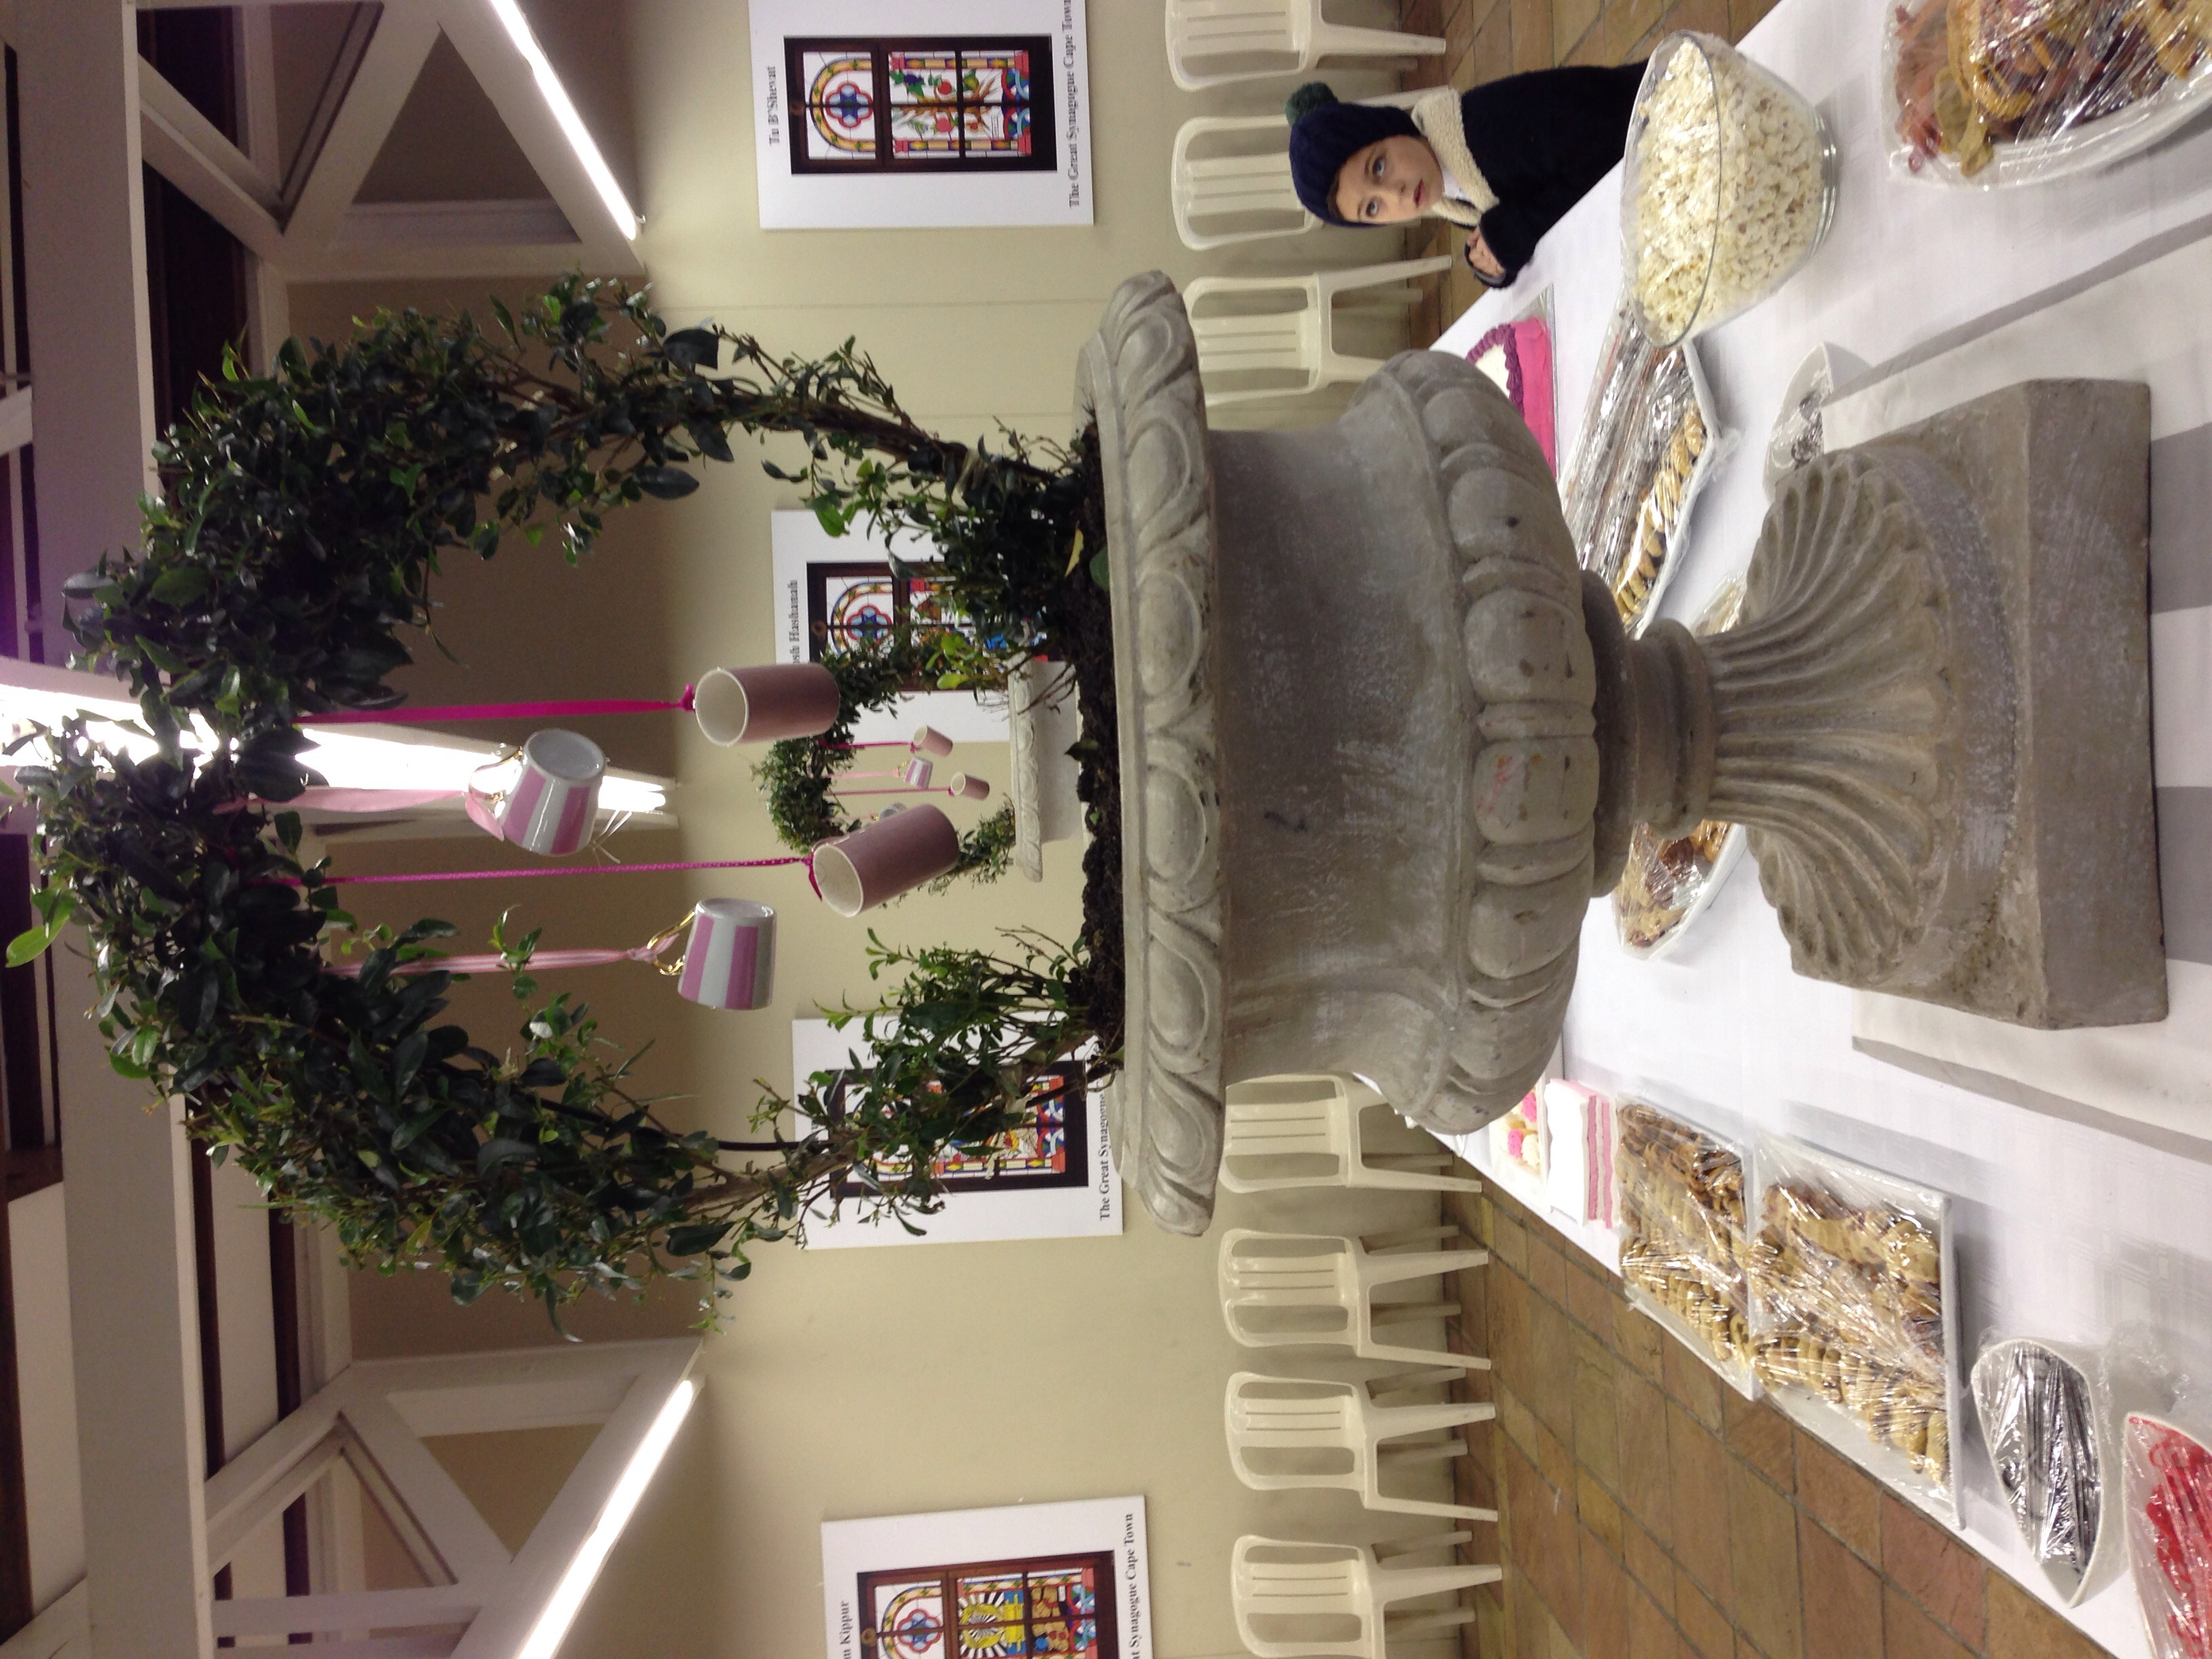 I loved the hanging tea cups idea - Thanks to Seon from Event Interiors for her creativity!